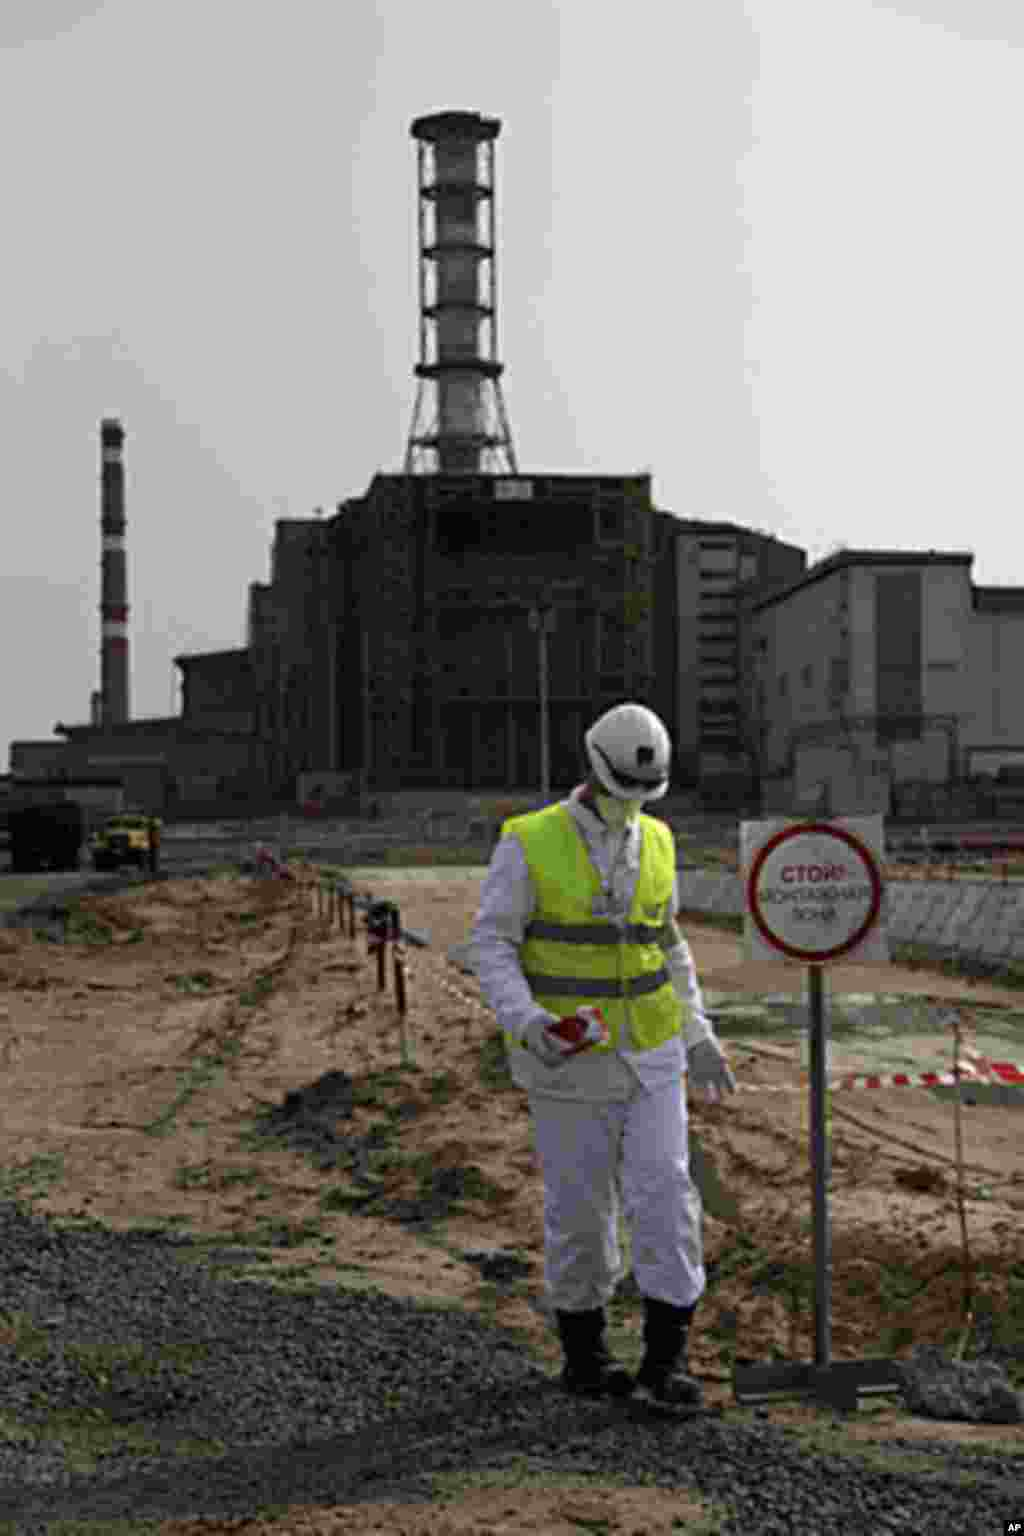 A plant worker walks by construction site in Chernobyl, (VOA - D. Markosian, April 2011)